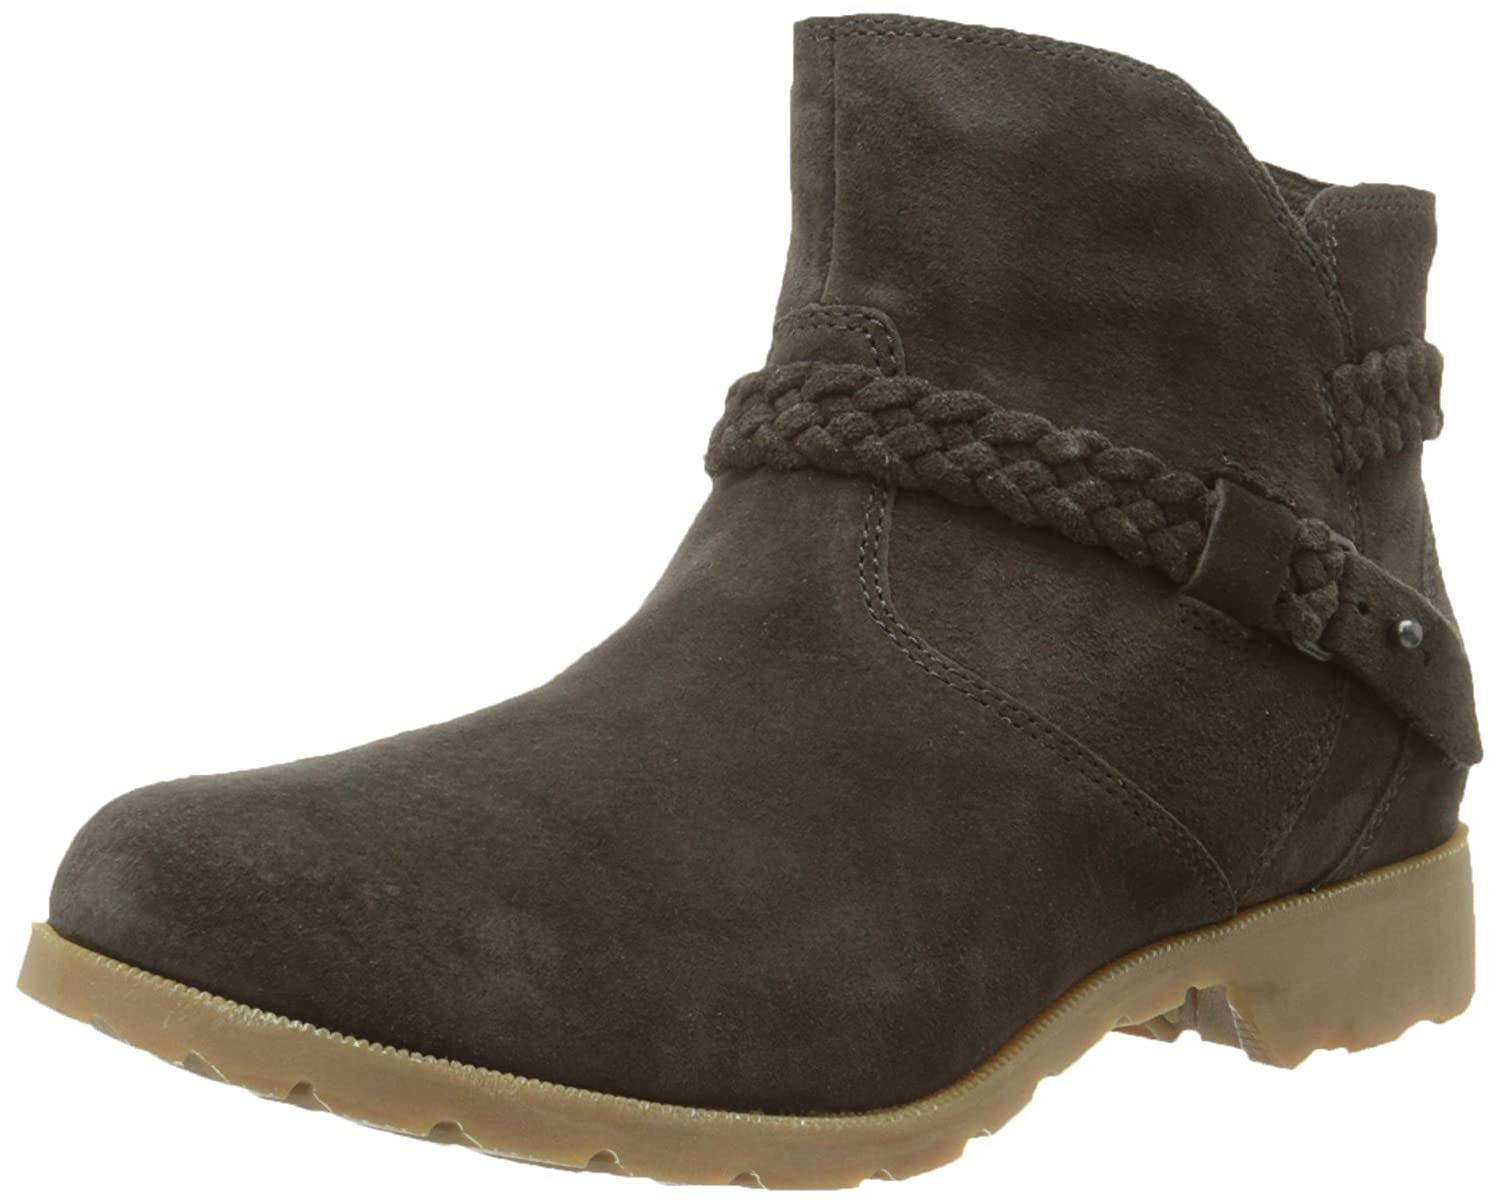 Teva Women's Delavina Suede Ankle Boot B00PS1YSSG 8.5 B(M) US|Black Olive